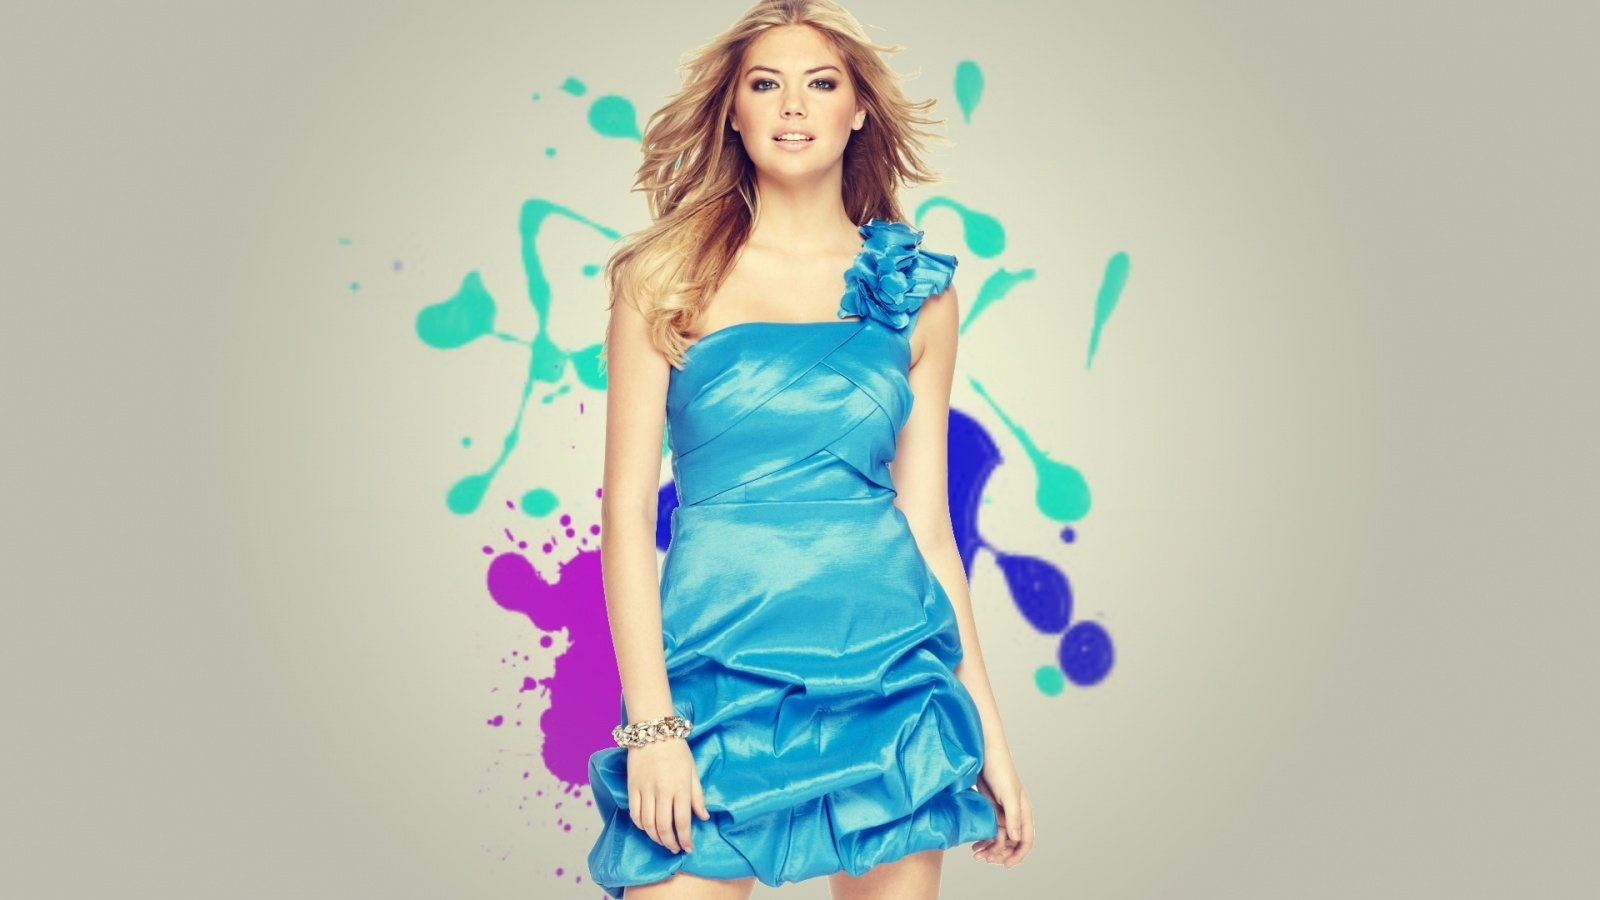 Wallpapers ID:403757